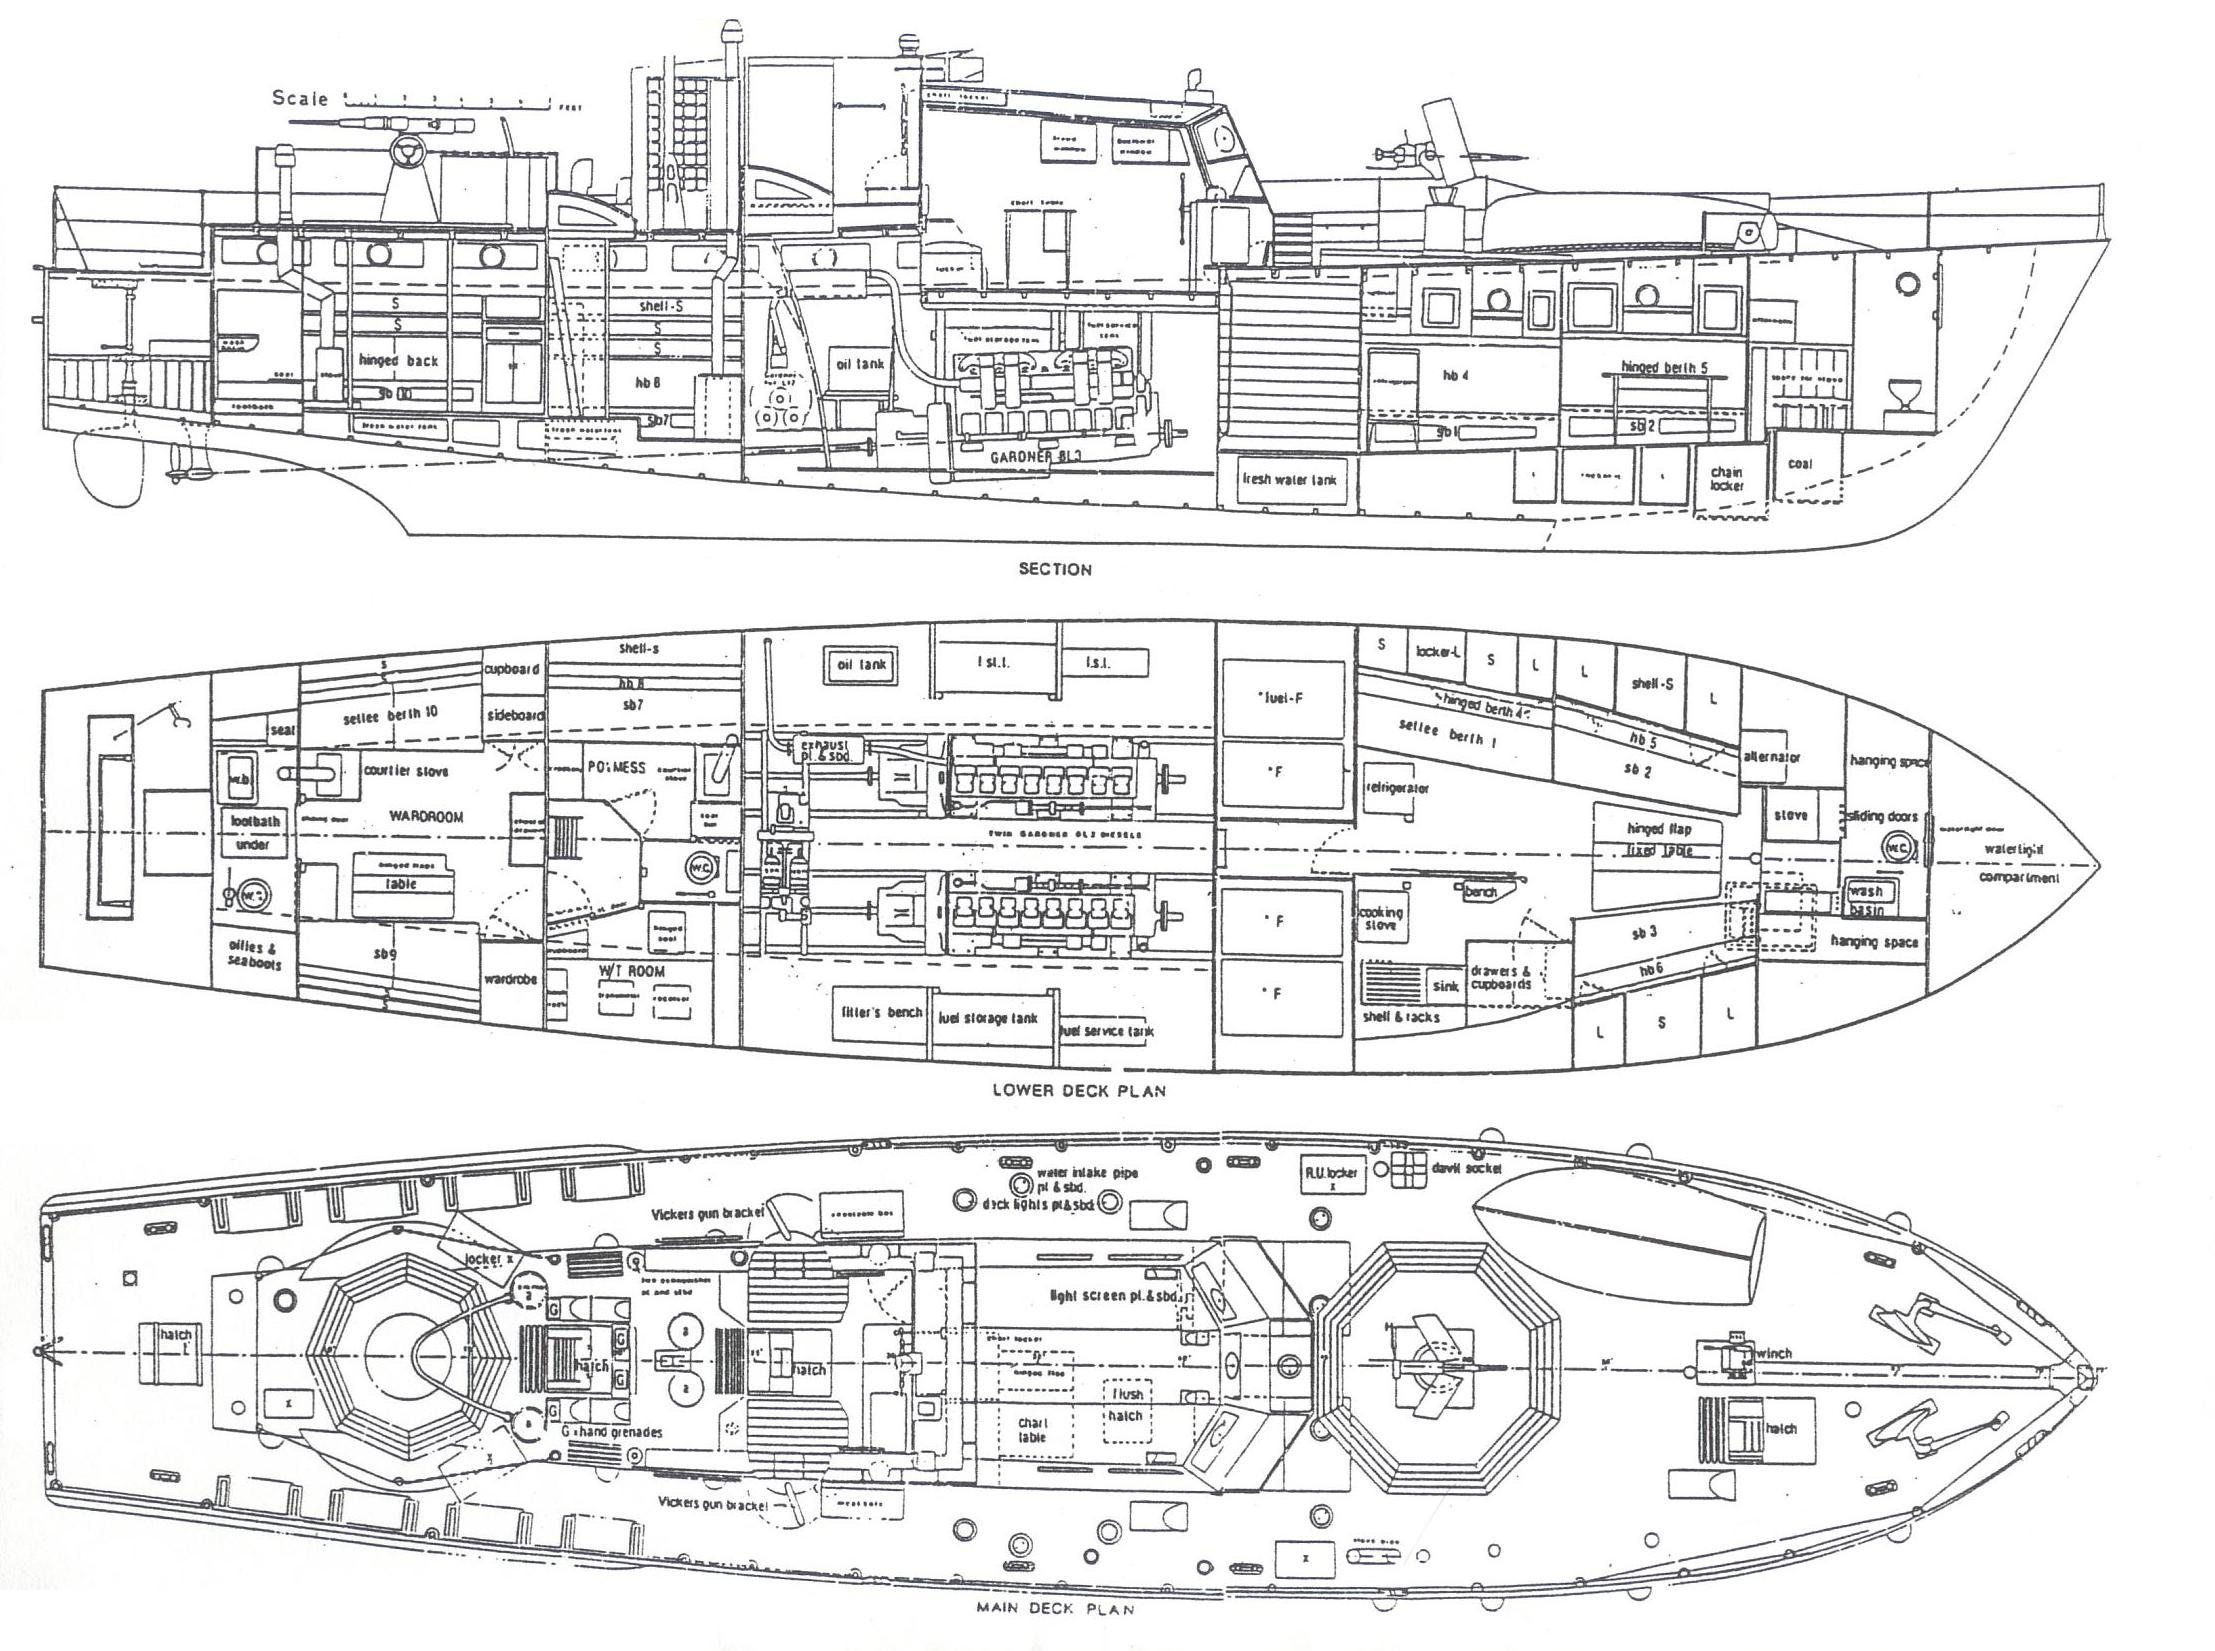 Ships Blueprints http://www.blueprintshut.com/-al-ross-conway-maritime-press-1990-an-excellent-source-for-more/naval-history.net*WW2Ships-HDML1001-01Plans.JPG/